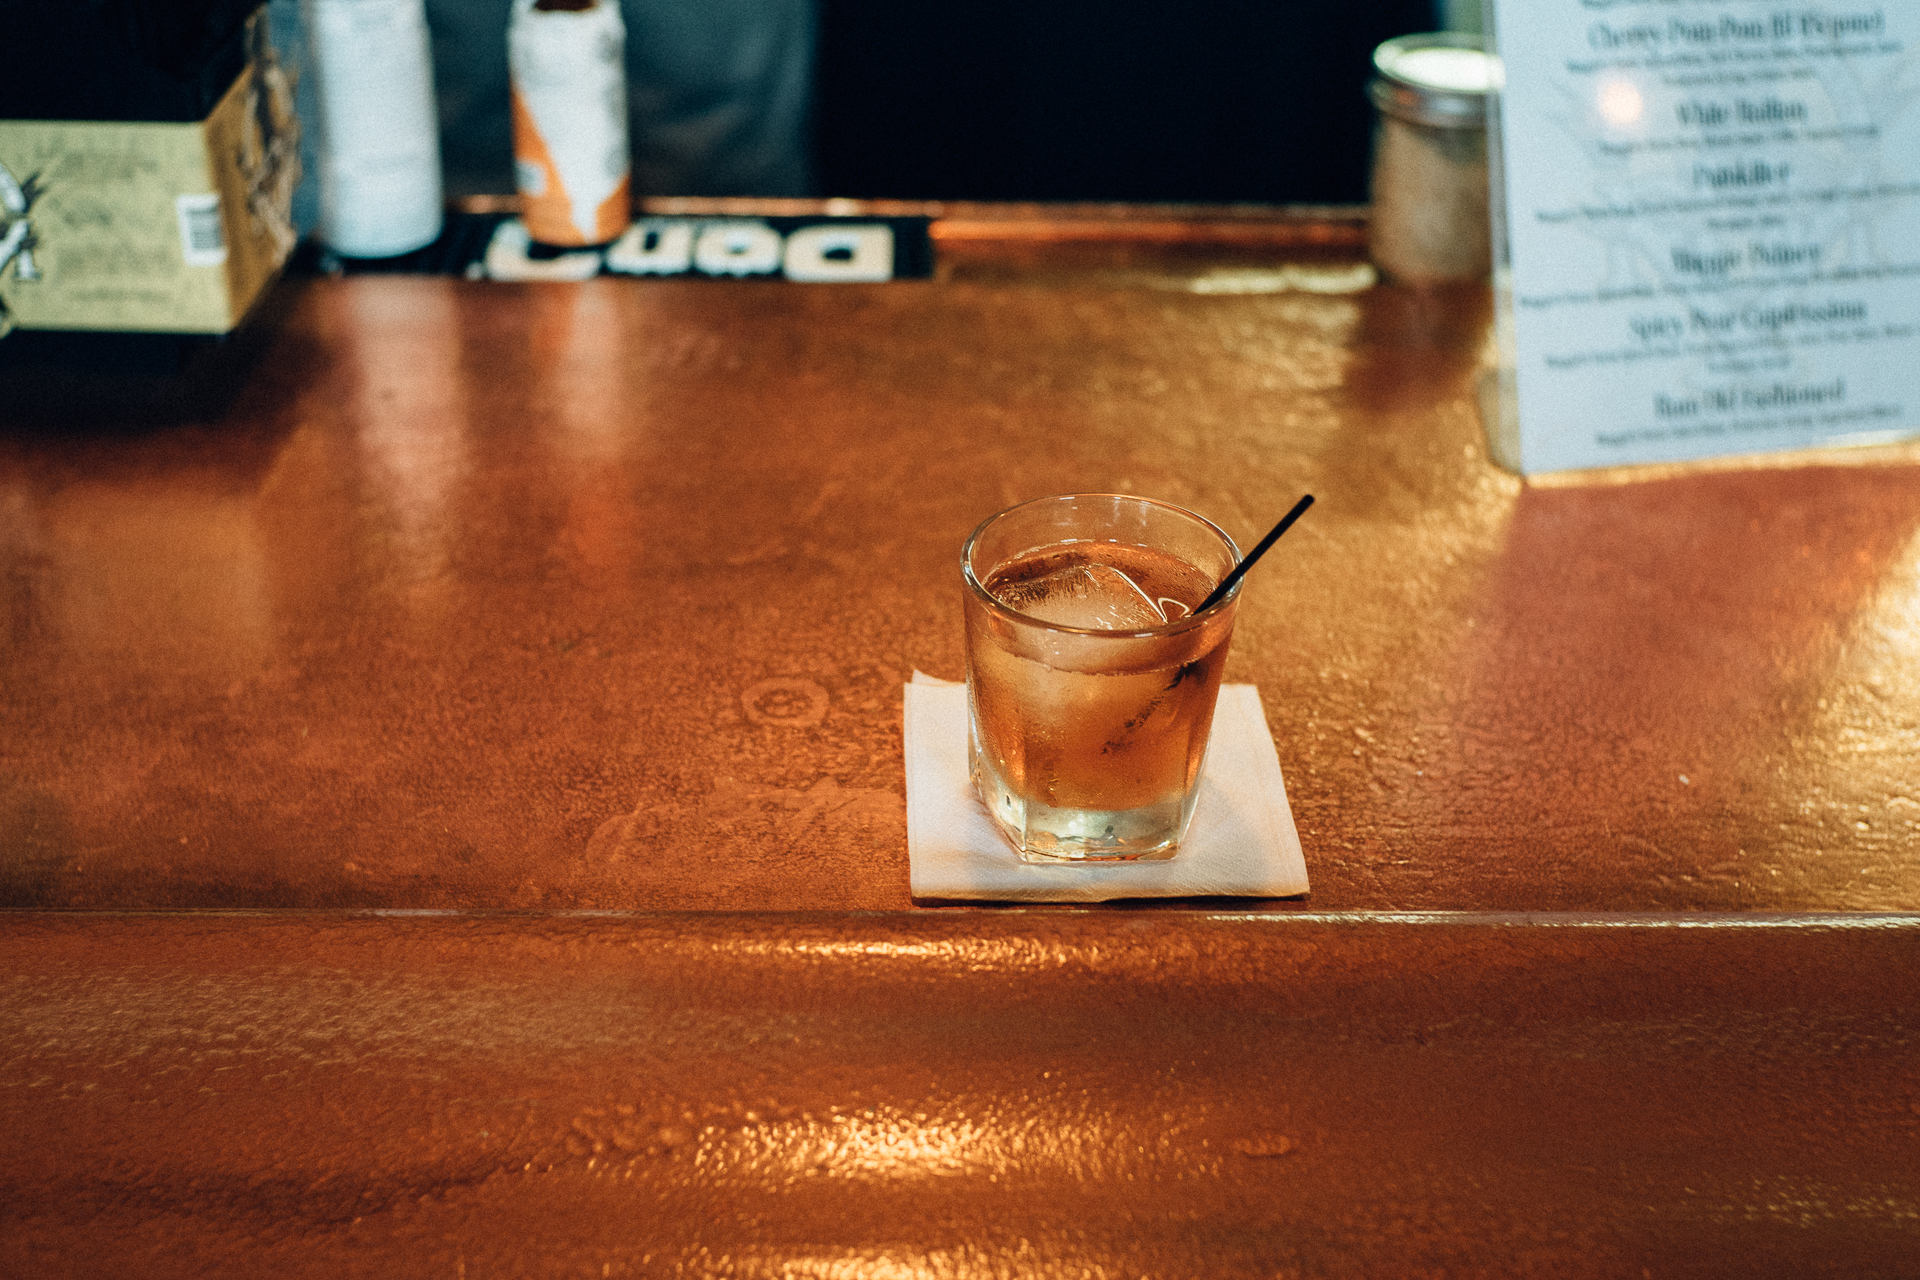 The Rum Old Fashioned (made with oaked rum...please start selling this in bottles!)